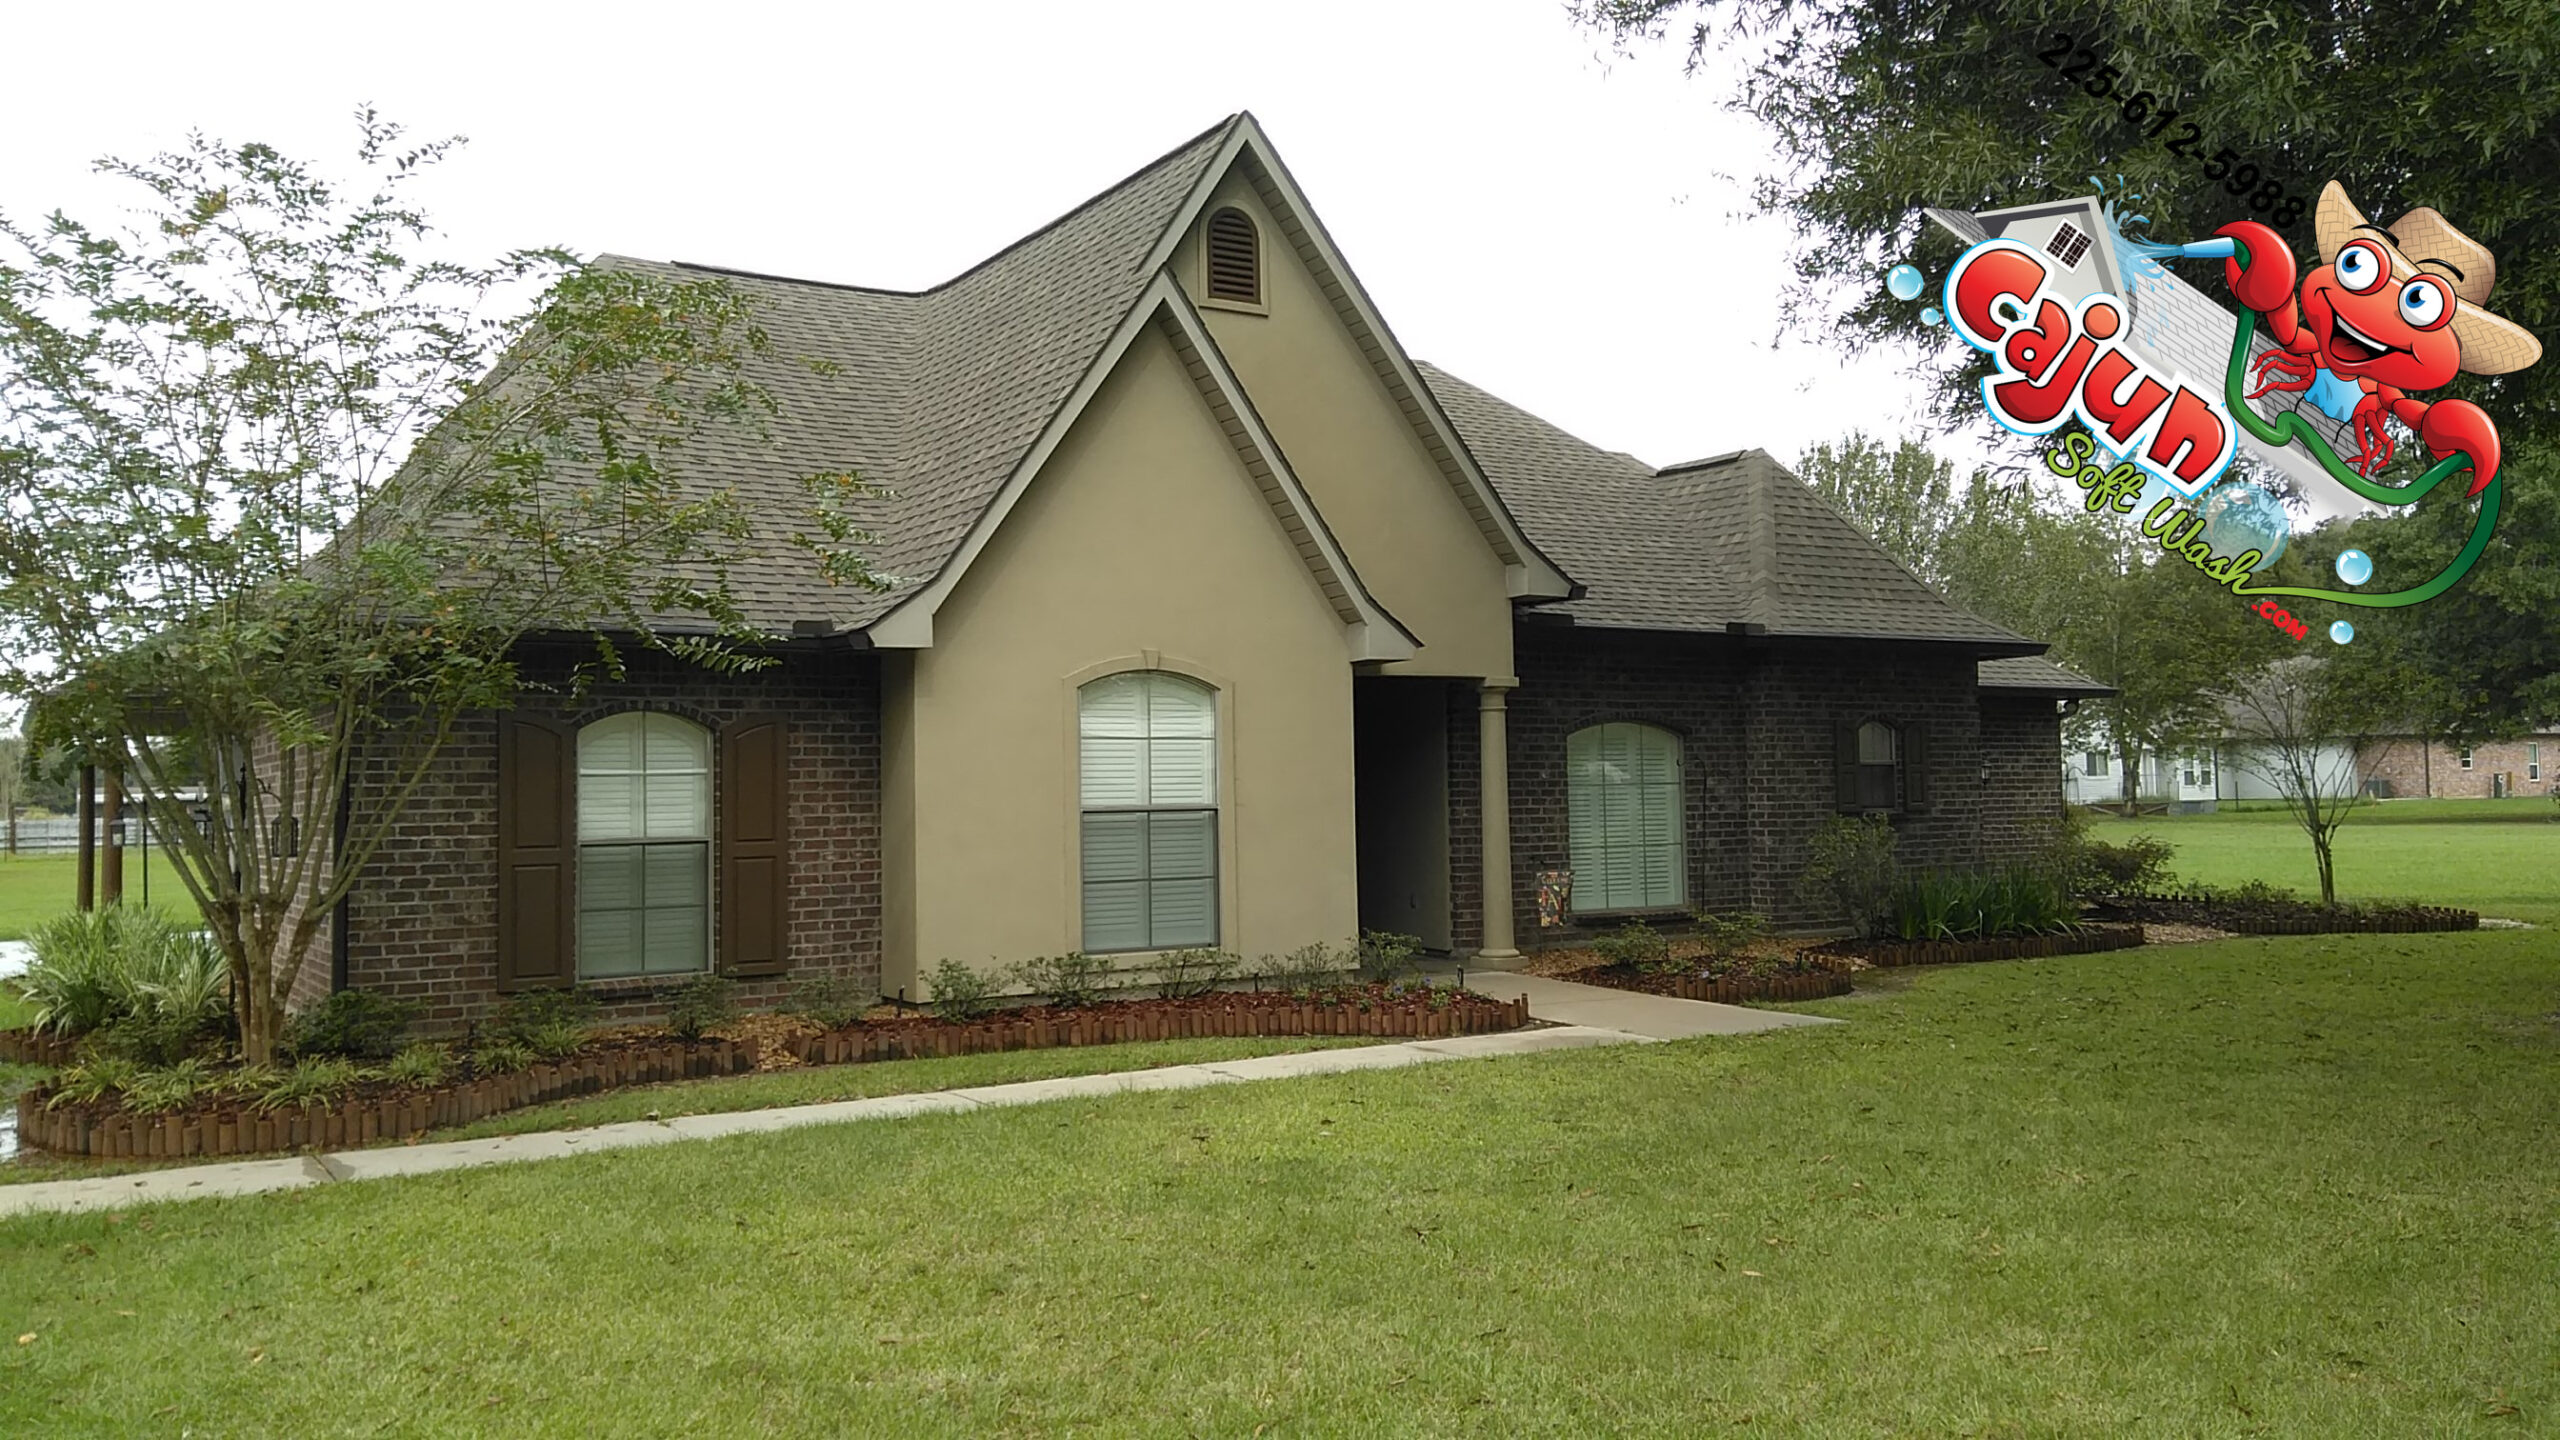 Cajun Soft Wash residential roof cleaning exterior dirt stain window